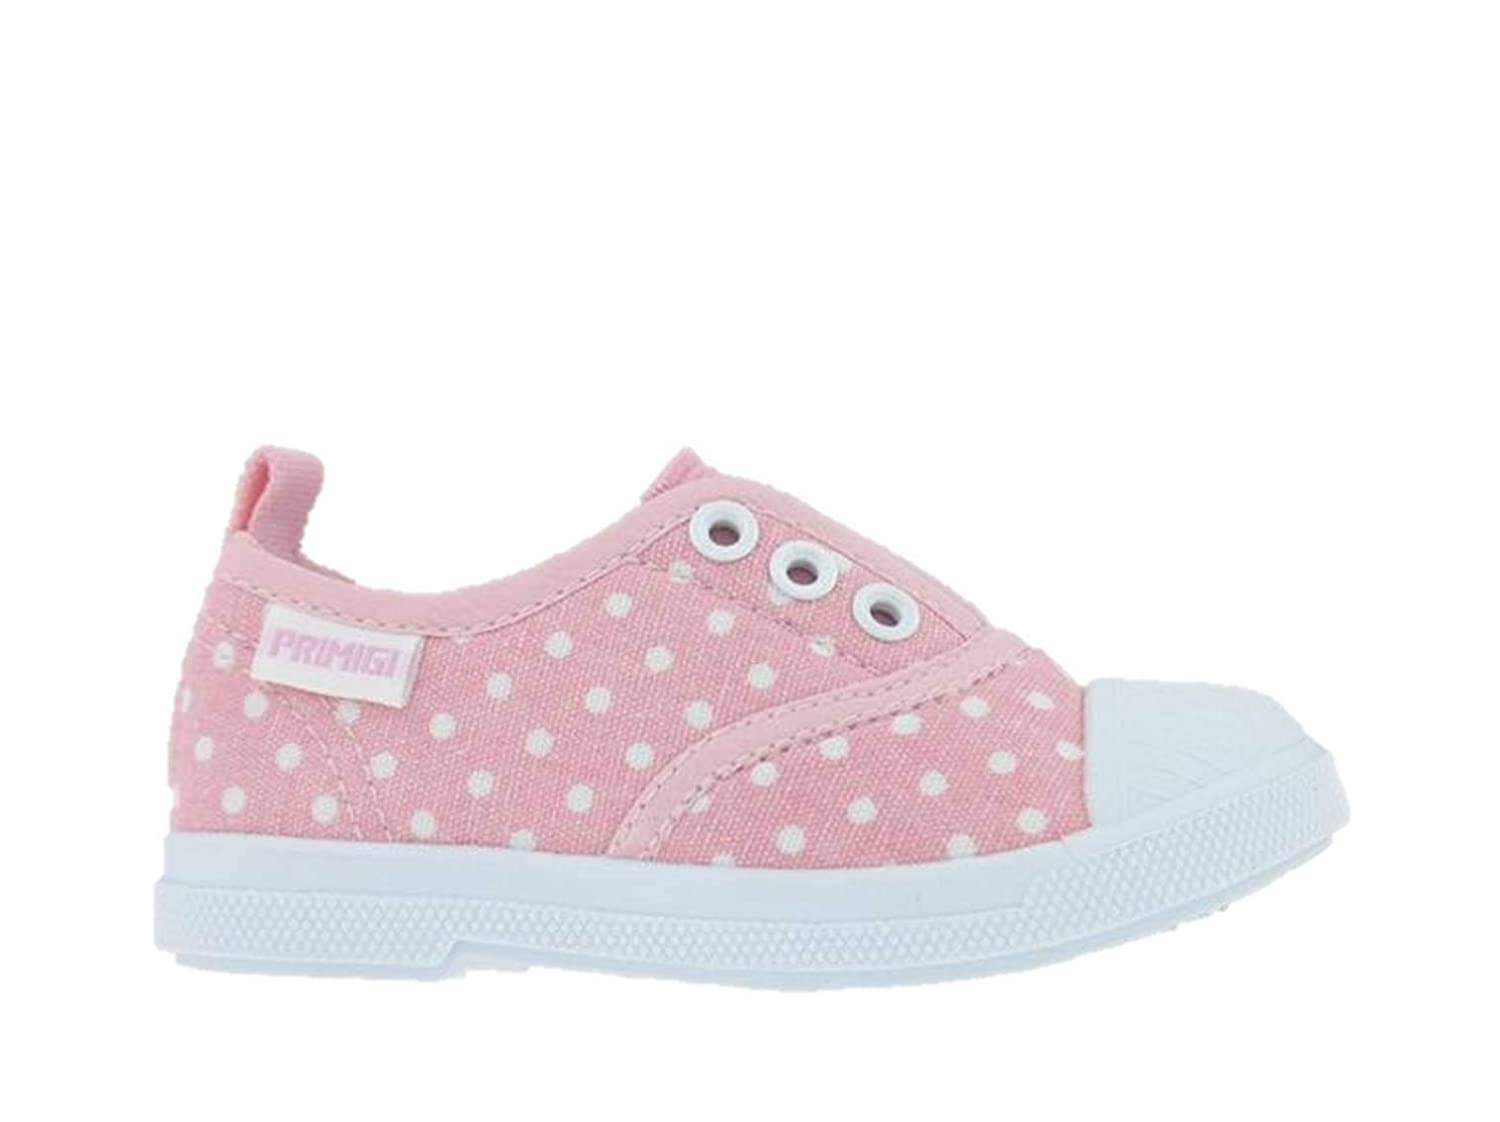 Primigi 3445122 Sneakers Infant Shoes Canvas First Steps Pink Made in Italy